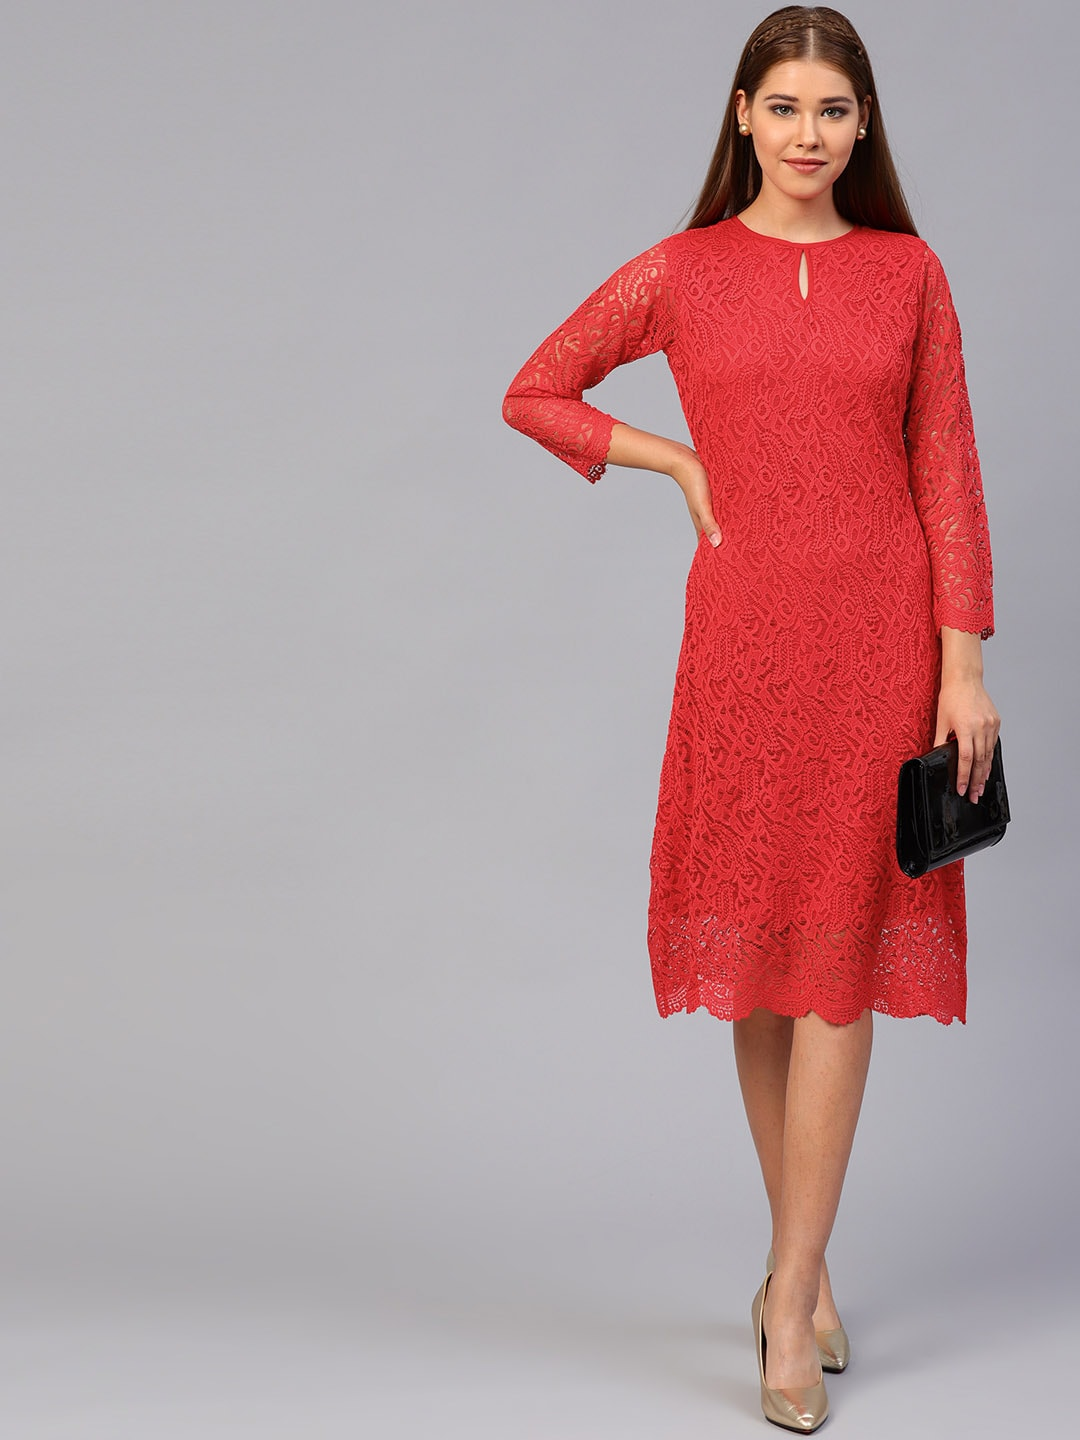 68c2f8c4f7 Red Dress - Buy Trendy Red Colour Dresses Online in India